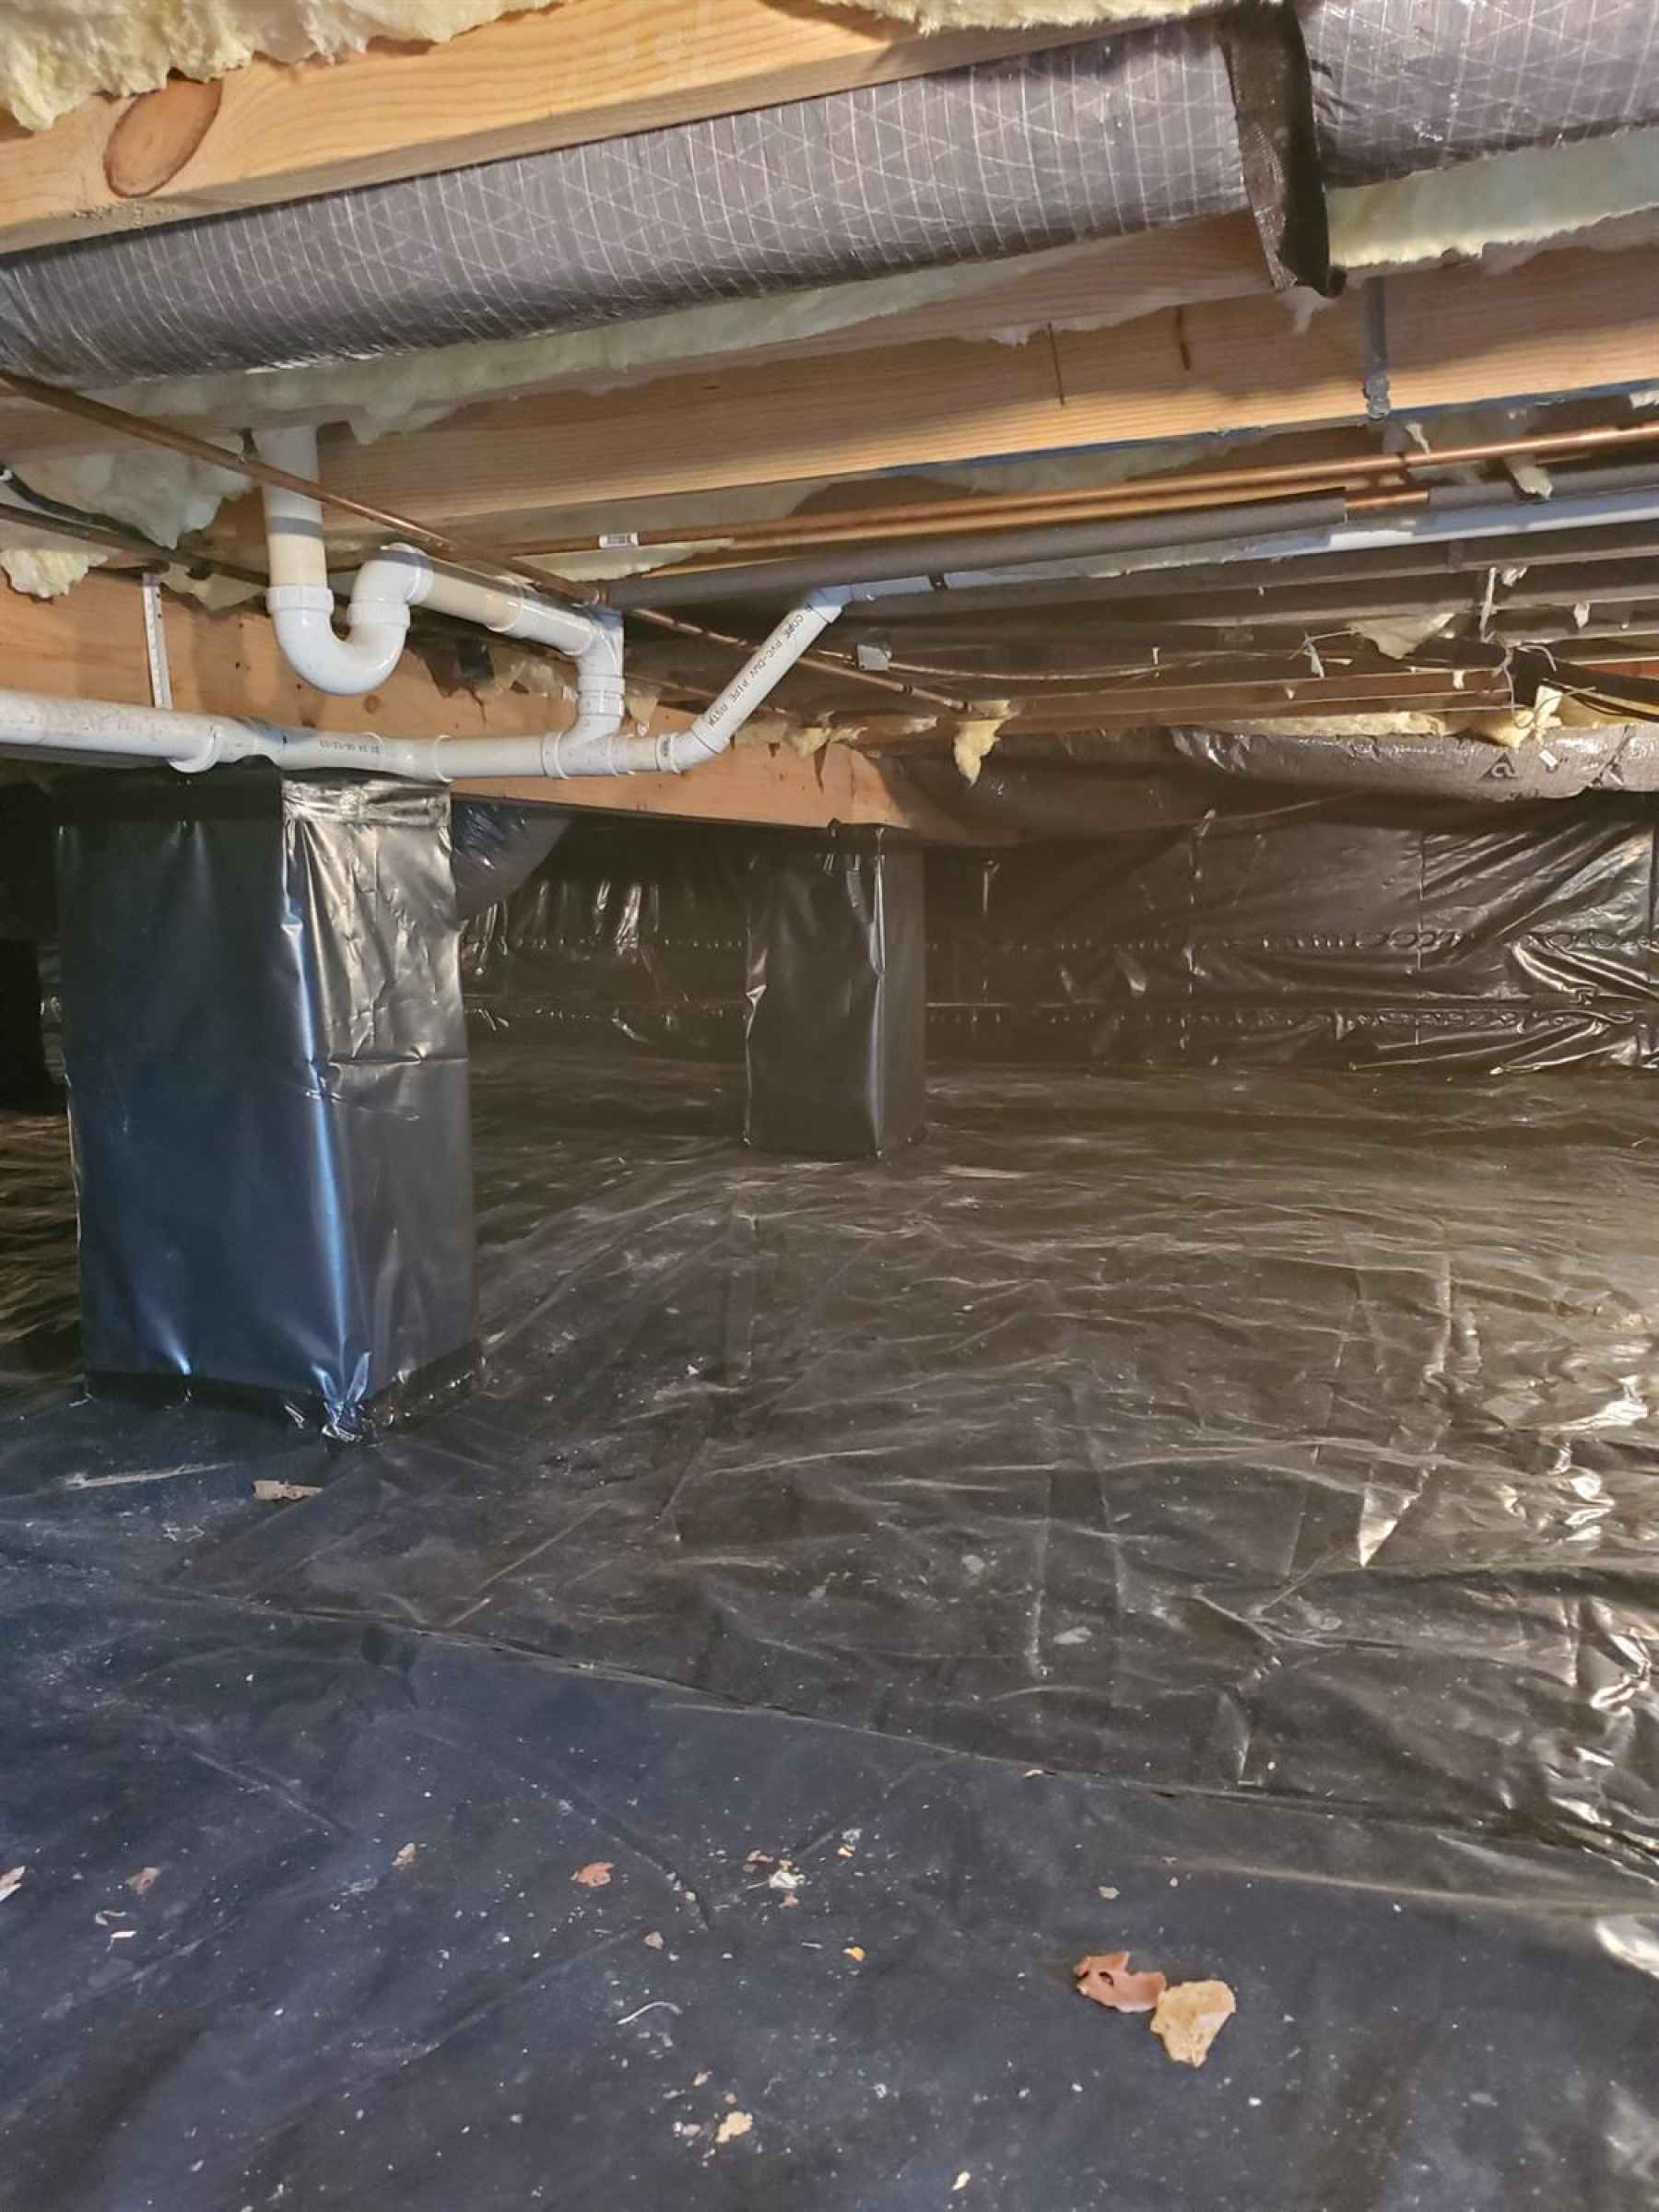 Conditioned crawlspace. Both heating system and two 47 gallon hot water heaters are located in the crawlspace.